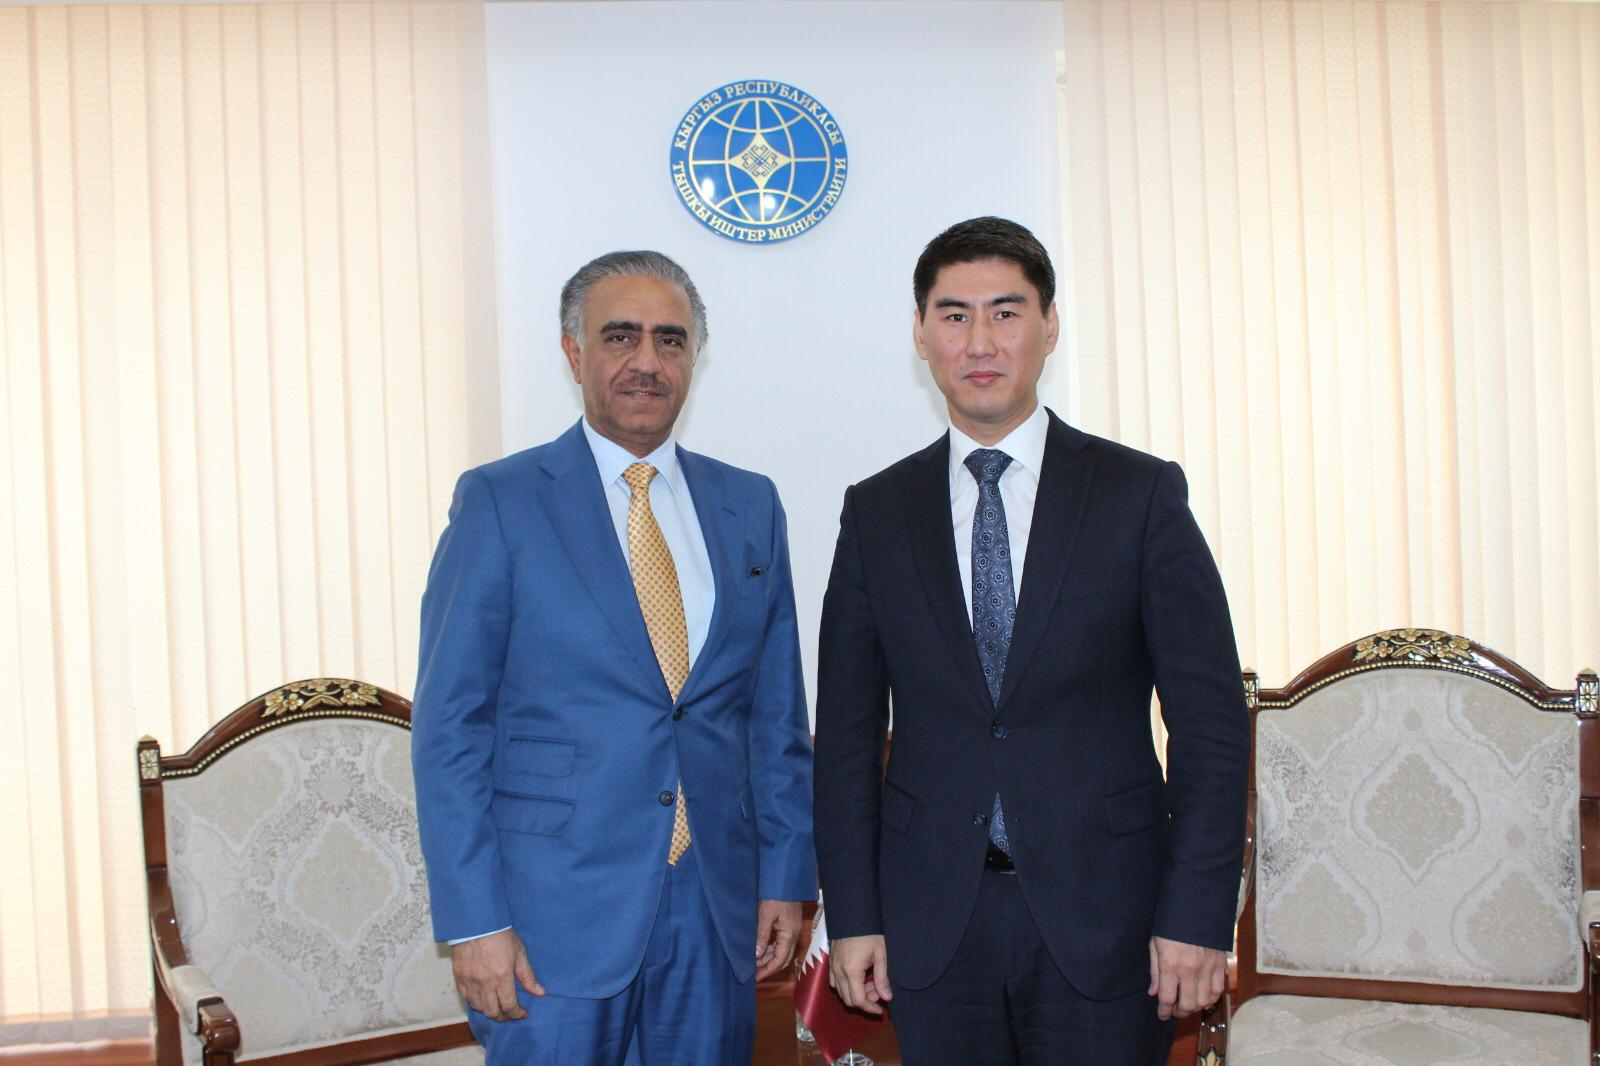 Minister of Foreign Affairs of the Republic of Kyrgyzstan Meets Qatari Ambassador